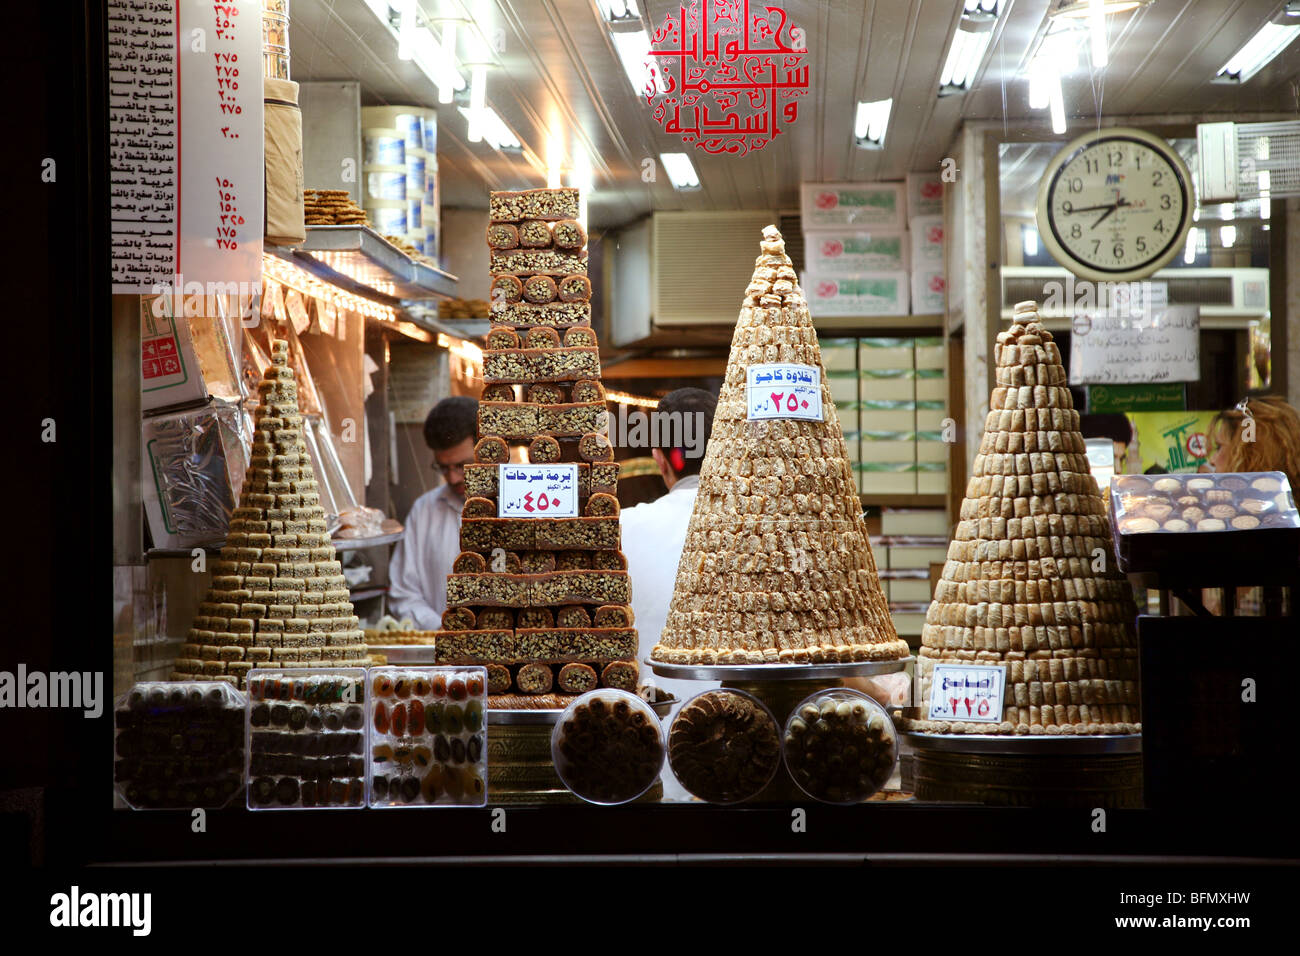 Syria, Damascus. Baclava and other Syrian pastries and treats piled neatly in a patisserie window. Stock Photo